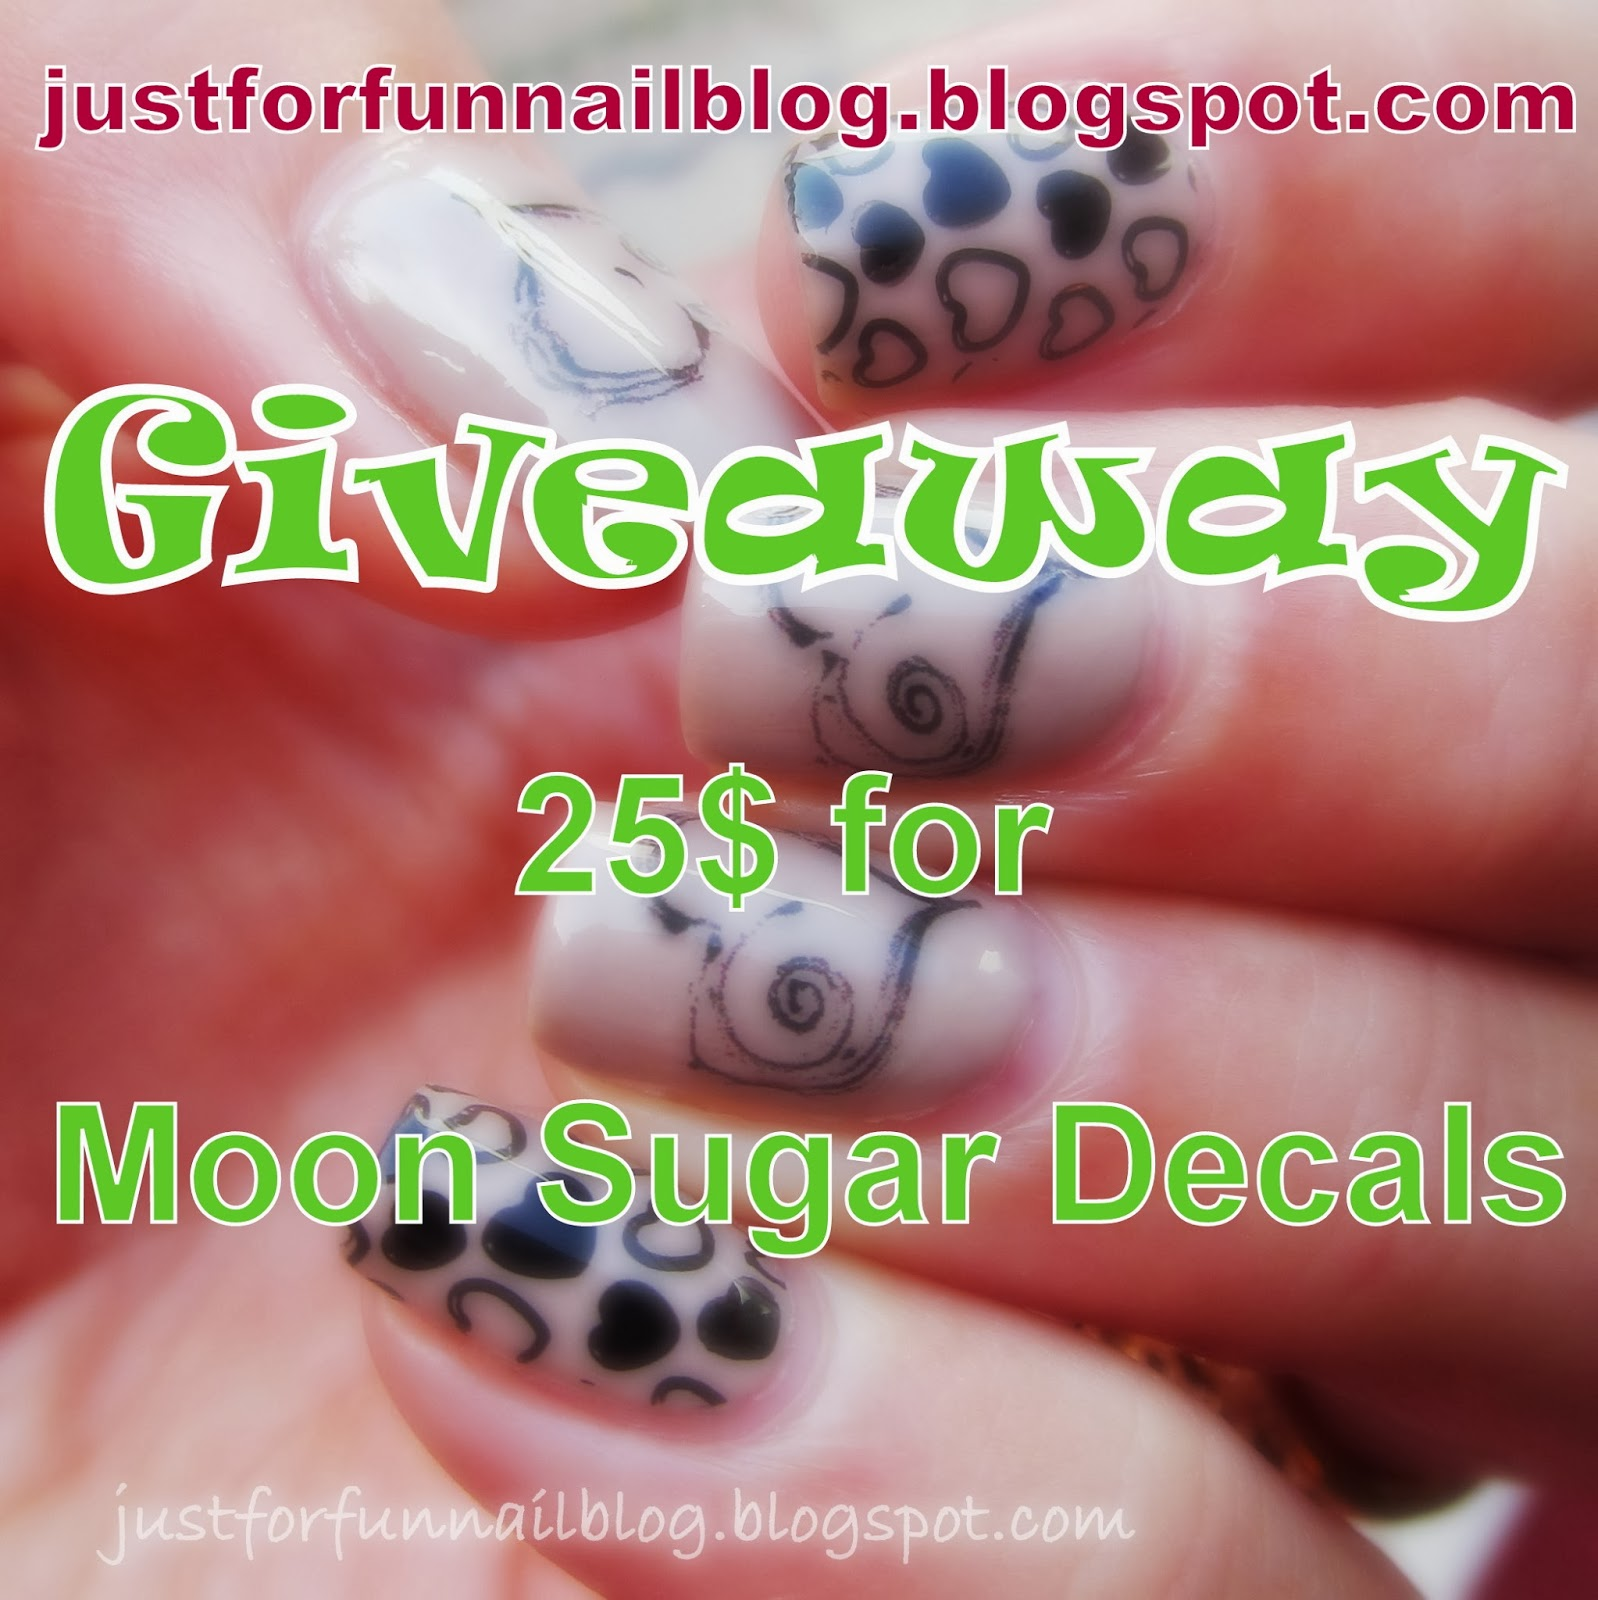 Just For Fun Twitter Giveaway By: Just For Fun: Moon Sugar Decals Review + Giveaway